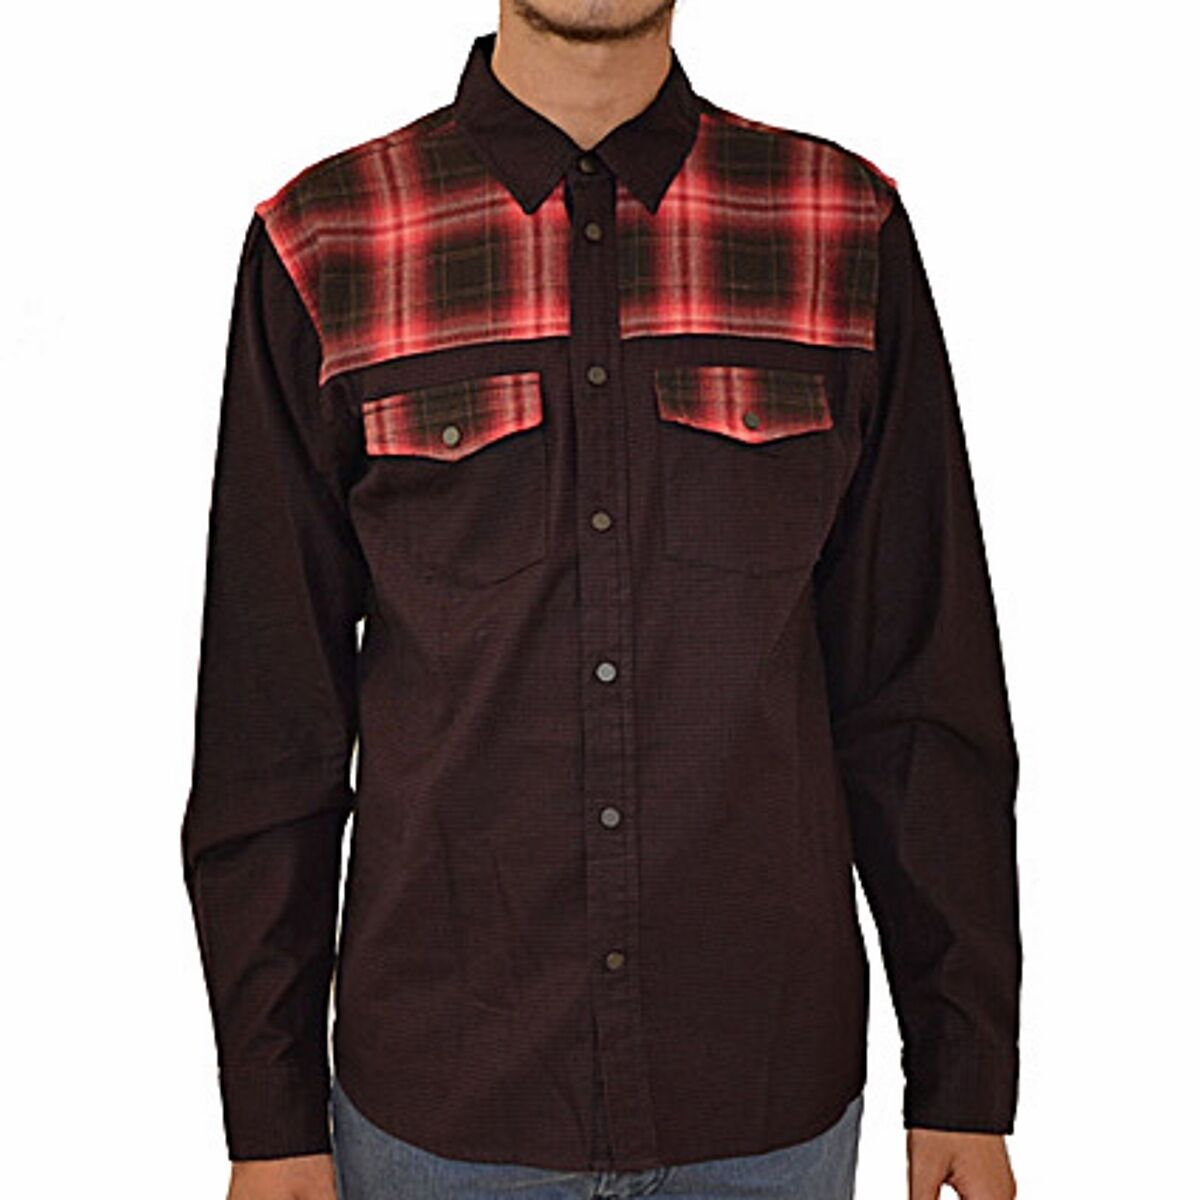 Marc by Marc Jacobs camicia, yosemite shirt